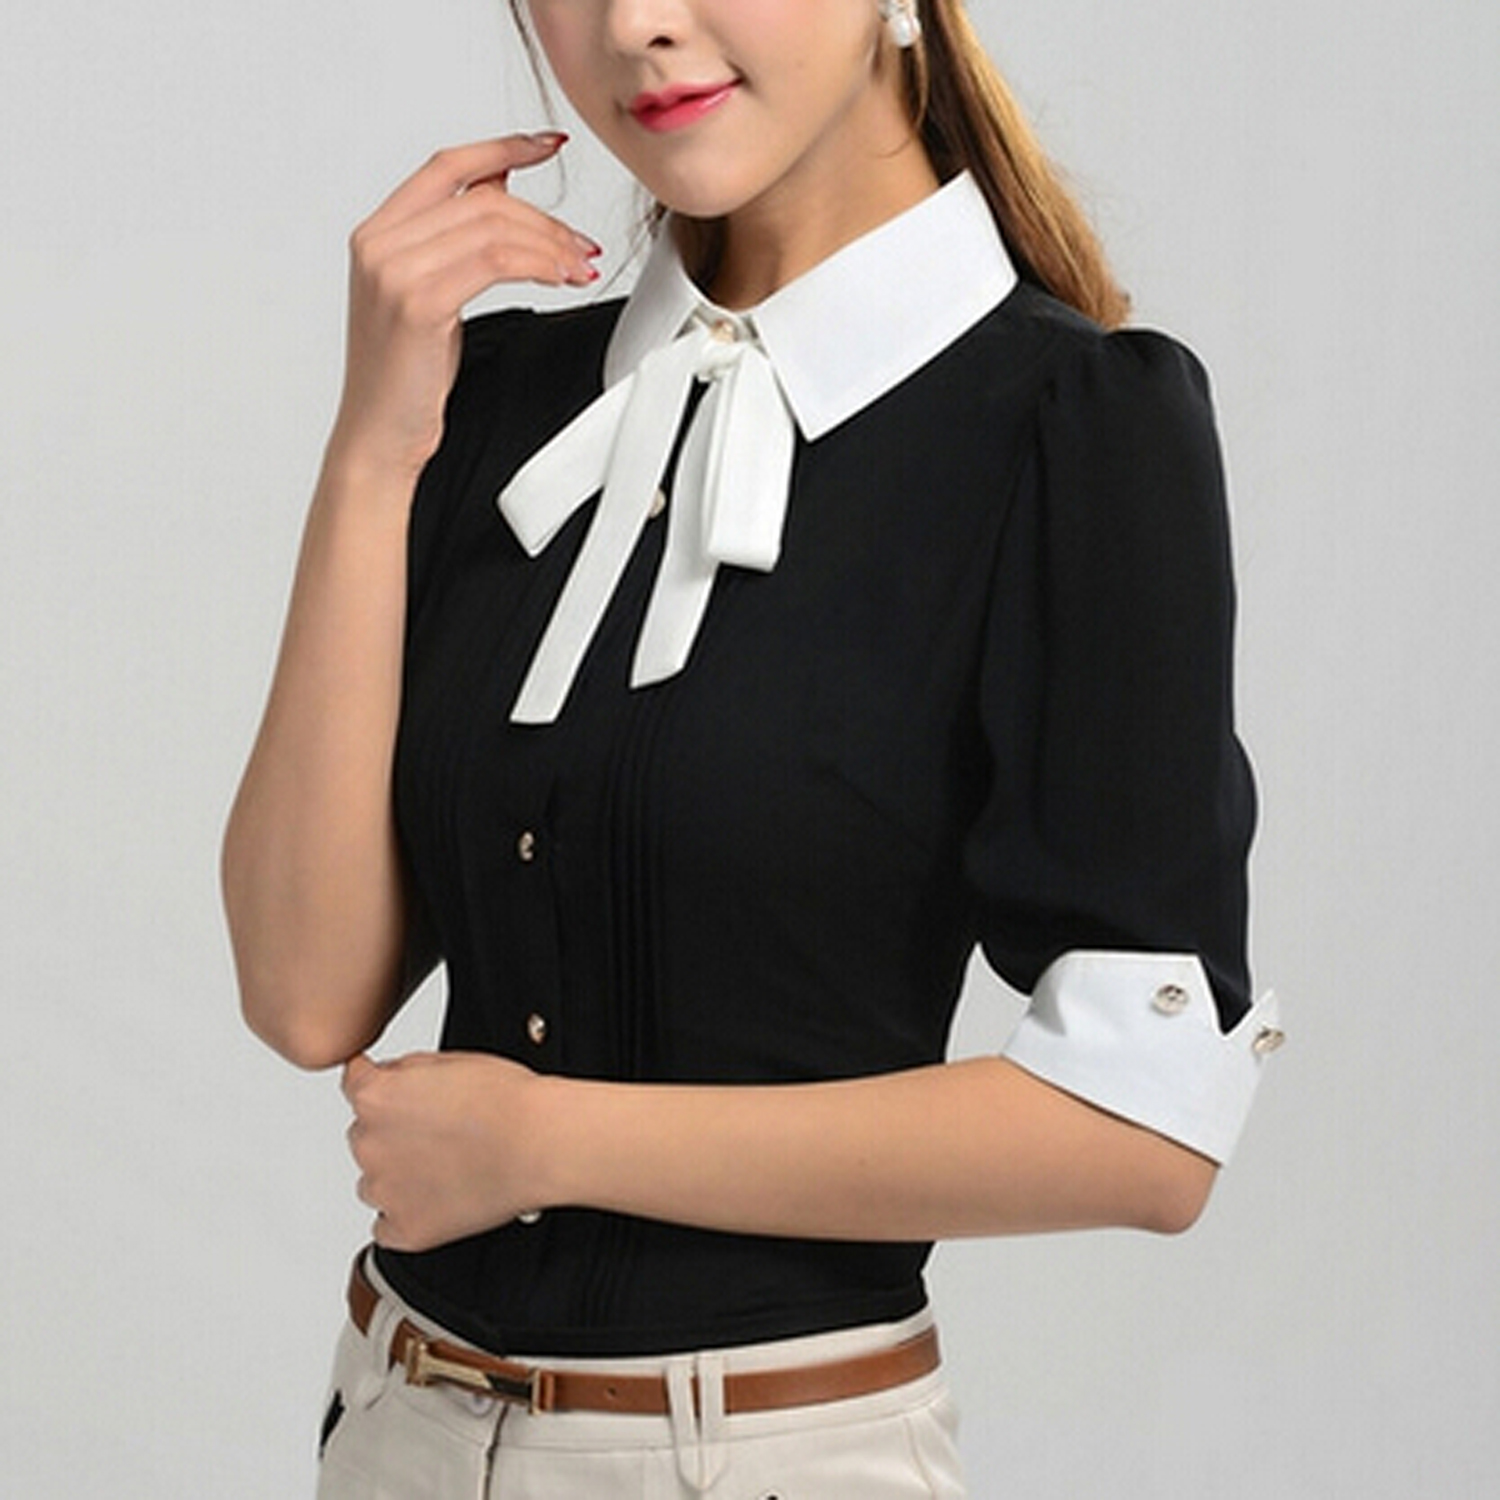 Are you looking for Black Shirt White Collar And Cuffs Tbdress is a best place to buy Shirts. Here offers a fantastic collection of Black Shirt White Collar And Cuffs, variety of styles, colors to suit you. All of items have the lowest price for you. So visit Tbdress now, you will have a super surprising!